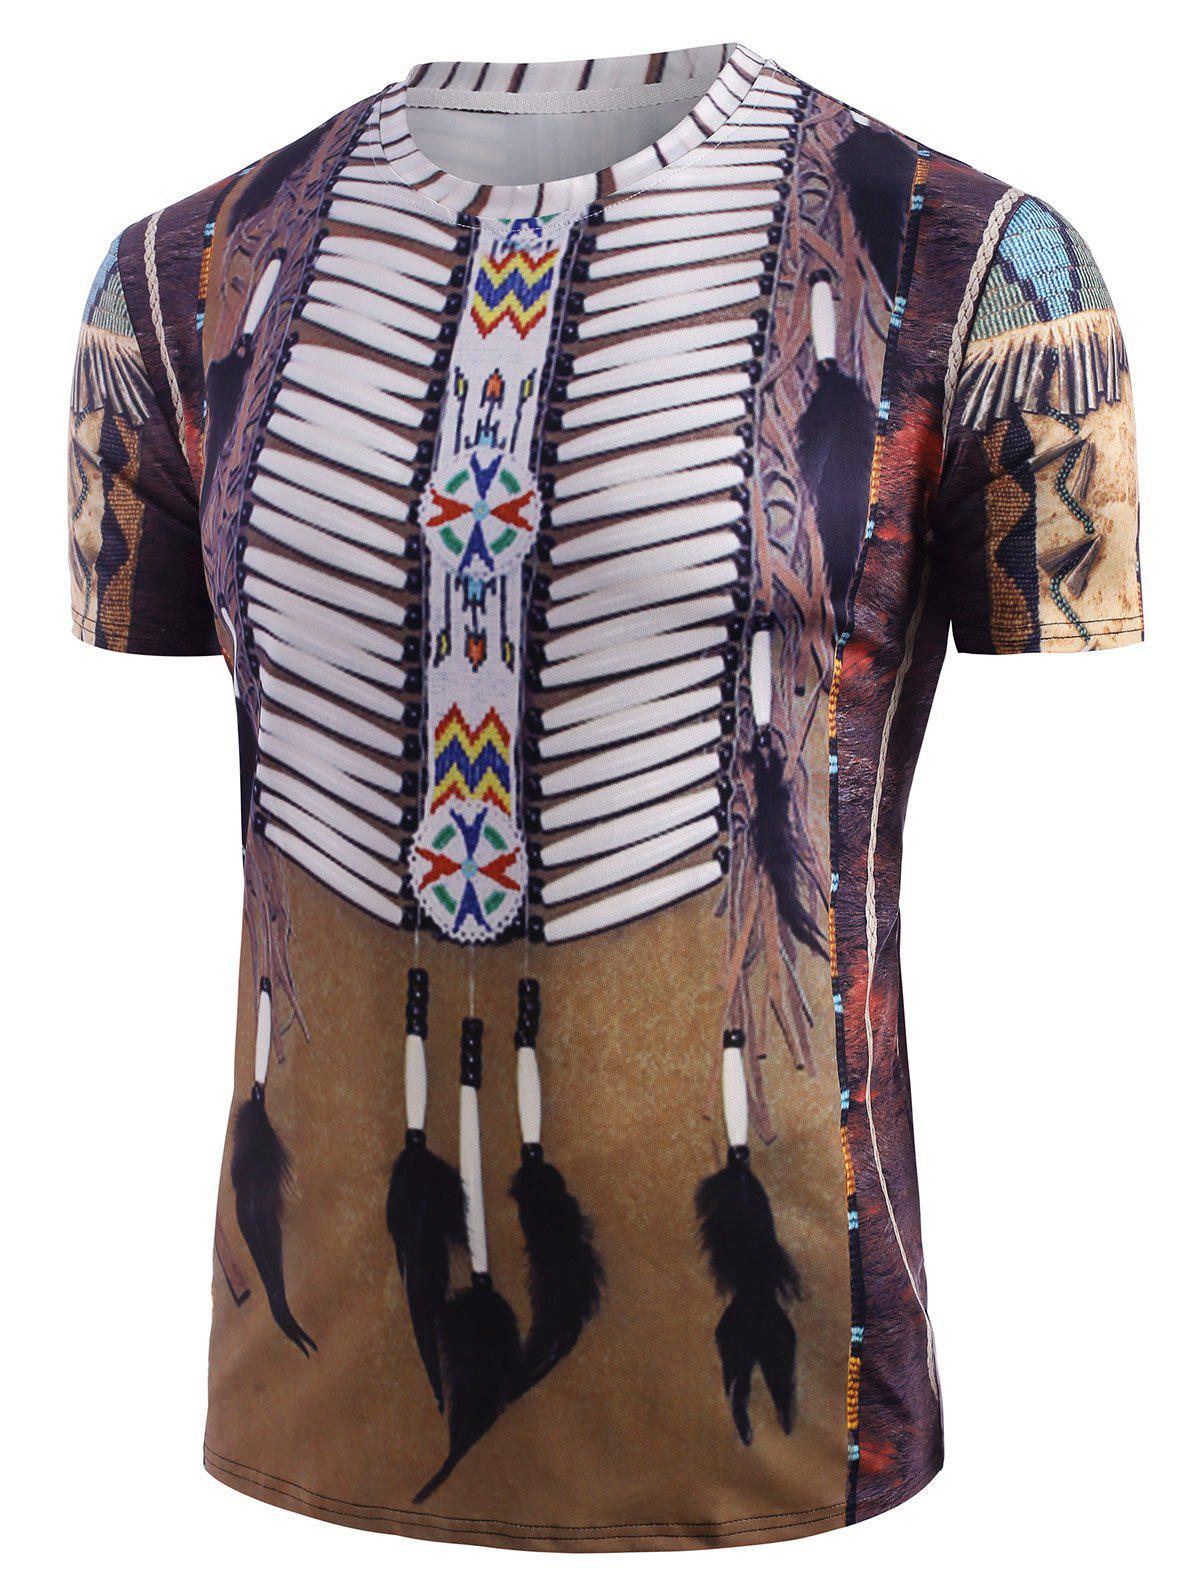 New Tribal Indian Graphic Print Round Neck T-shirt